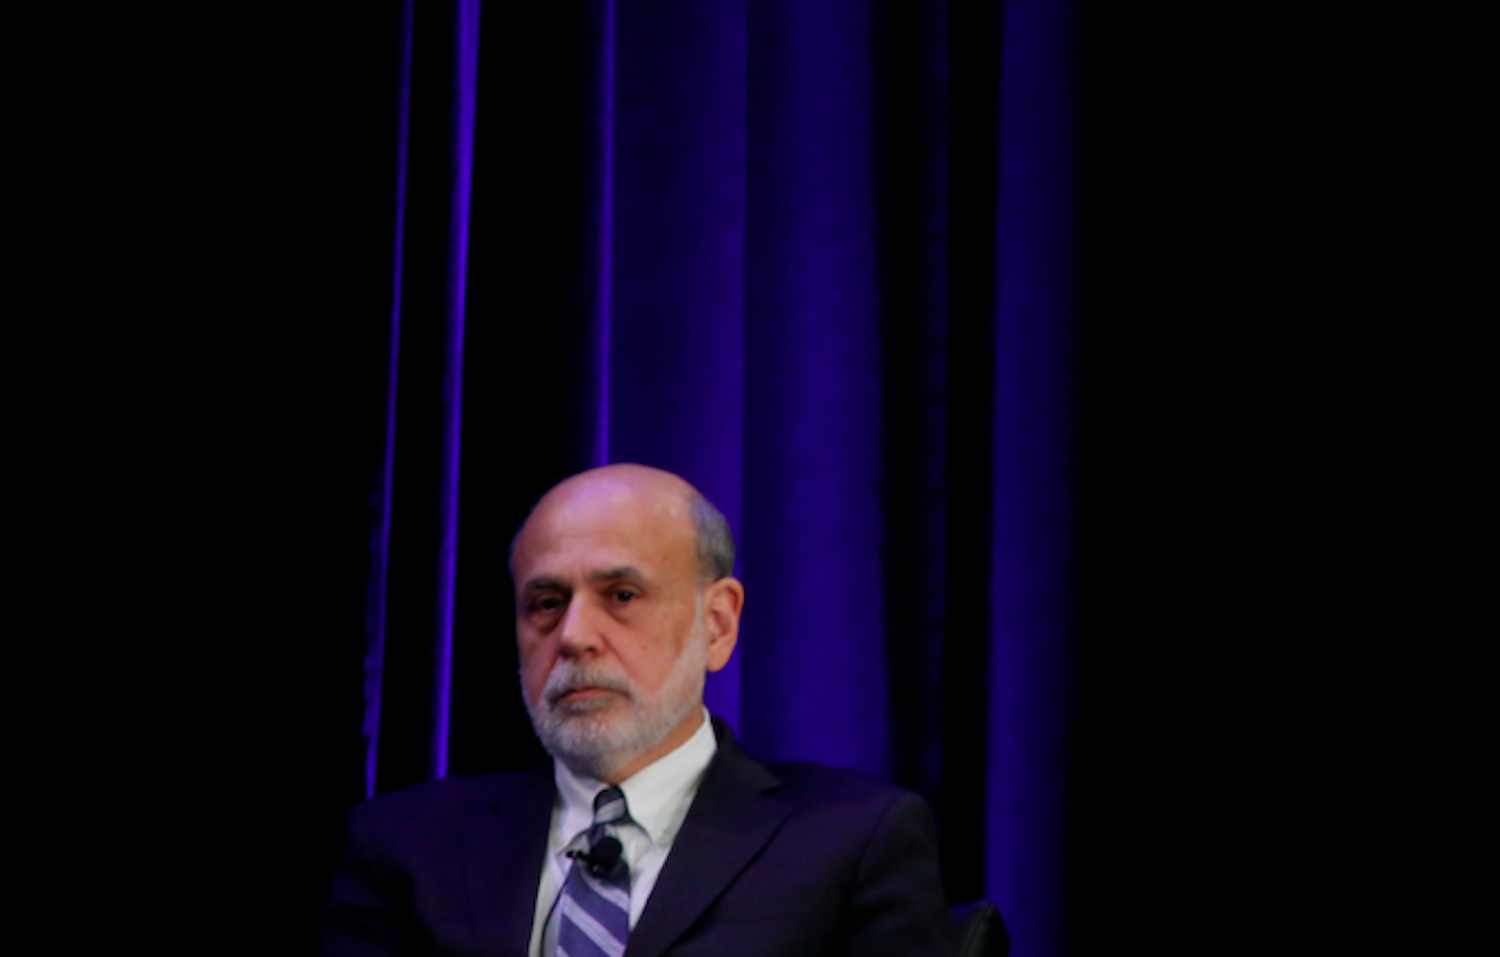 5 major themes from this year's largest gathering of economists